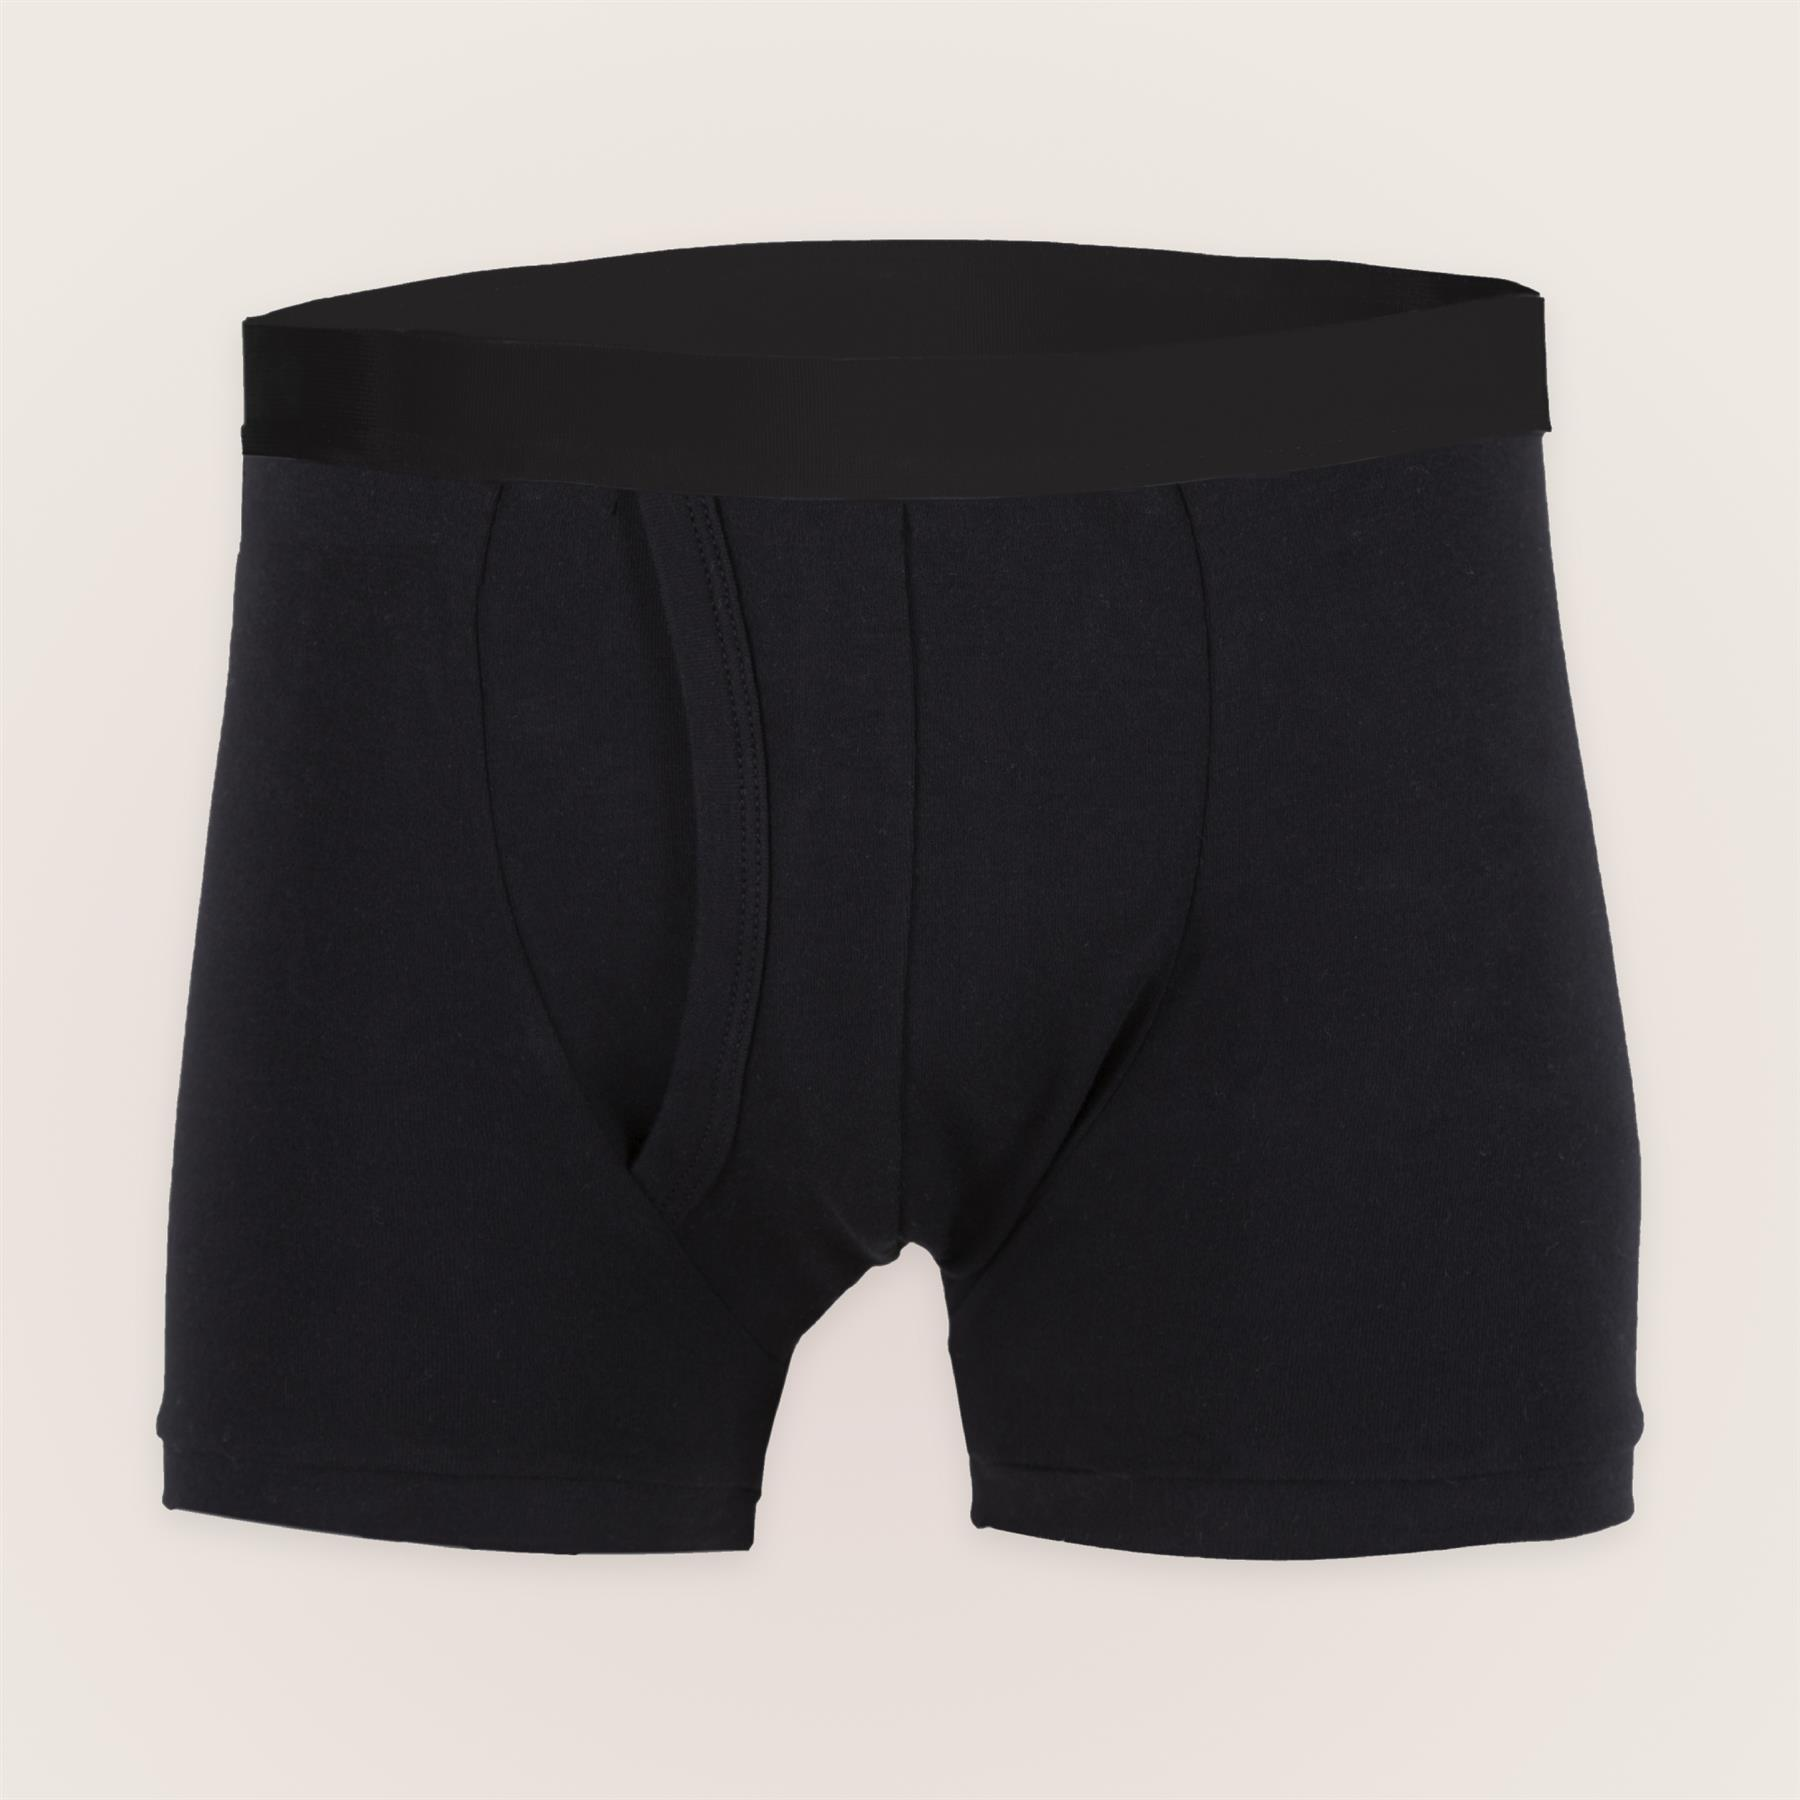 Inco-Elite Mens Washable Incontinence Trunks